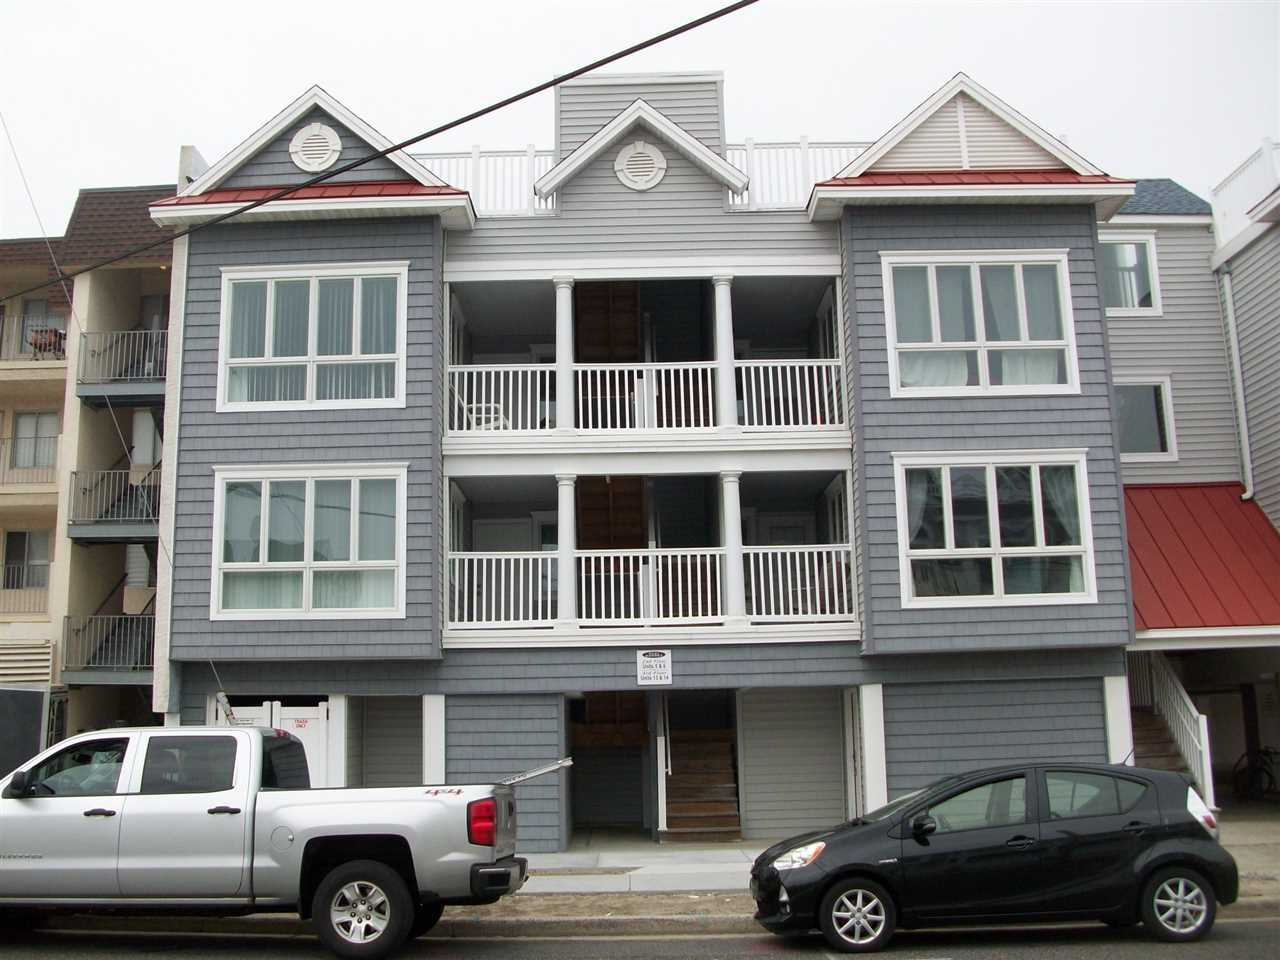 9501, Unit 13 Sunset, Stone Harbor